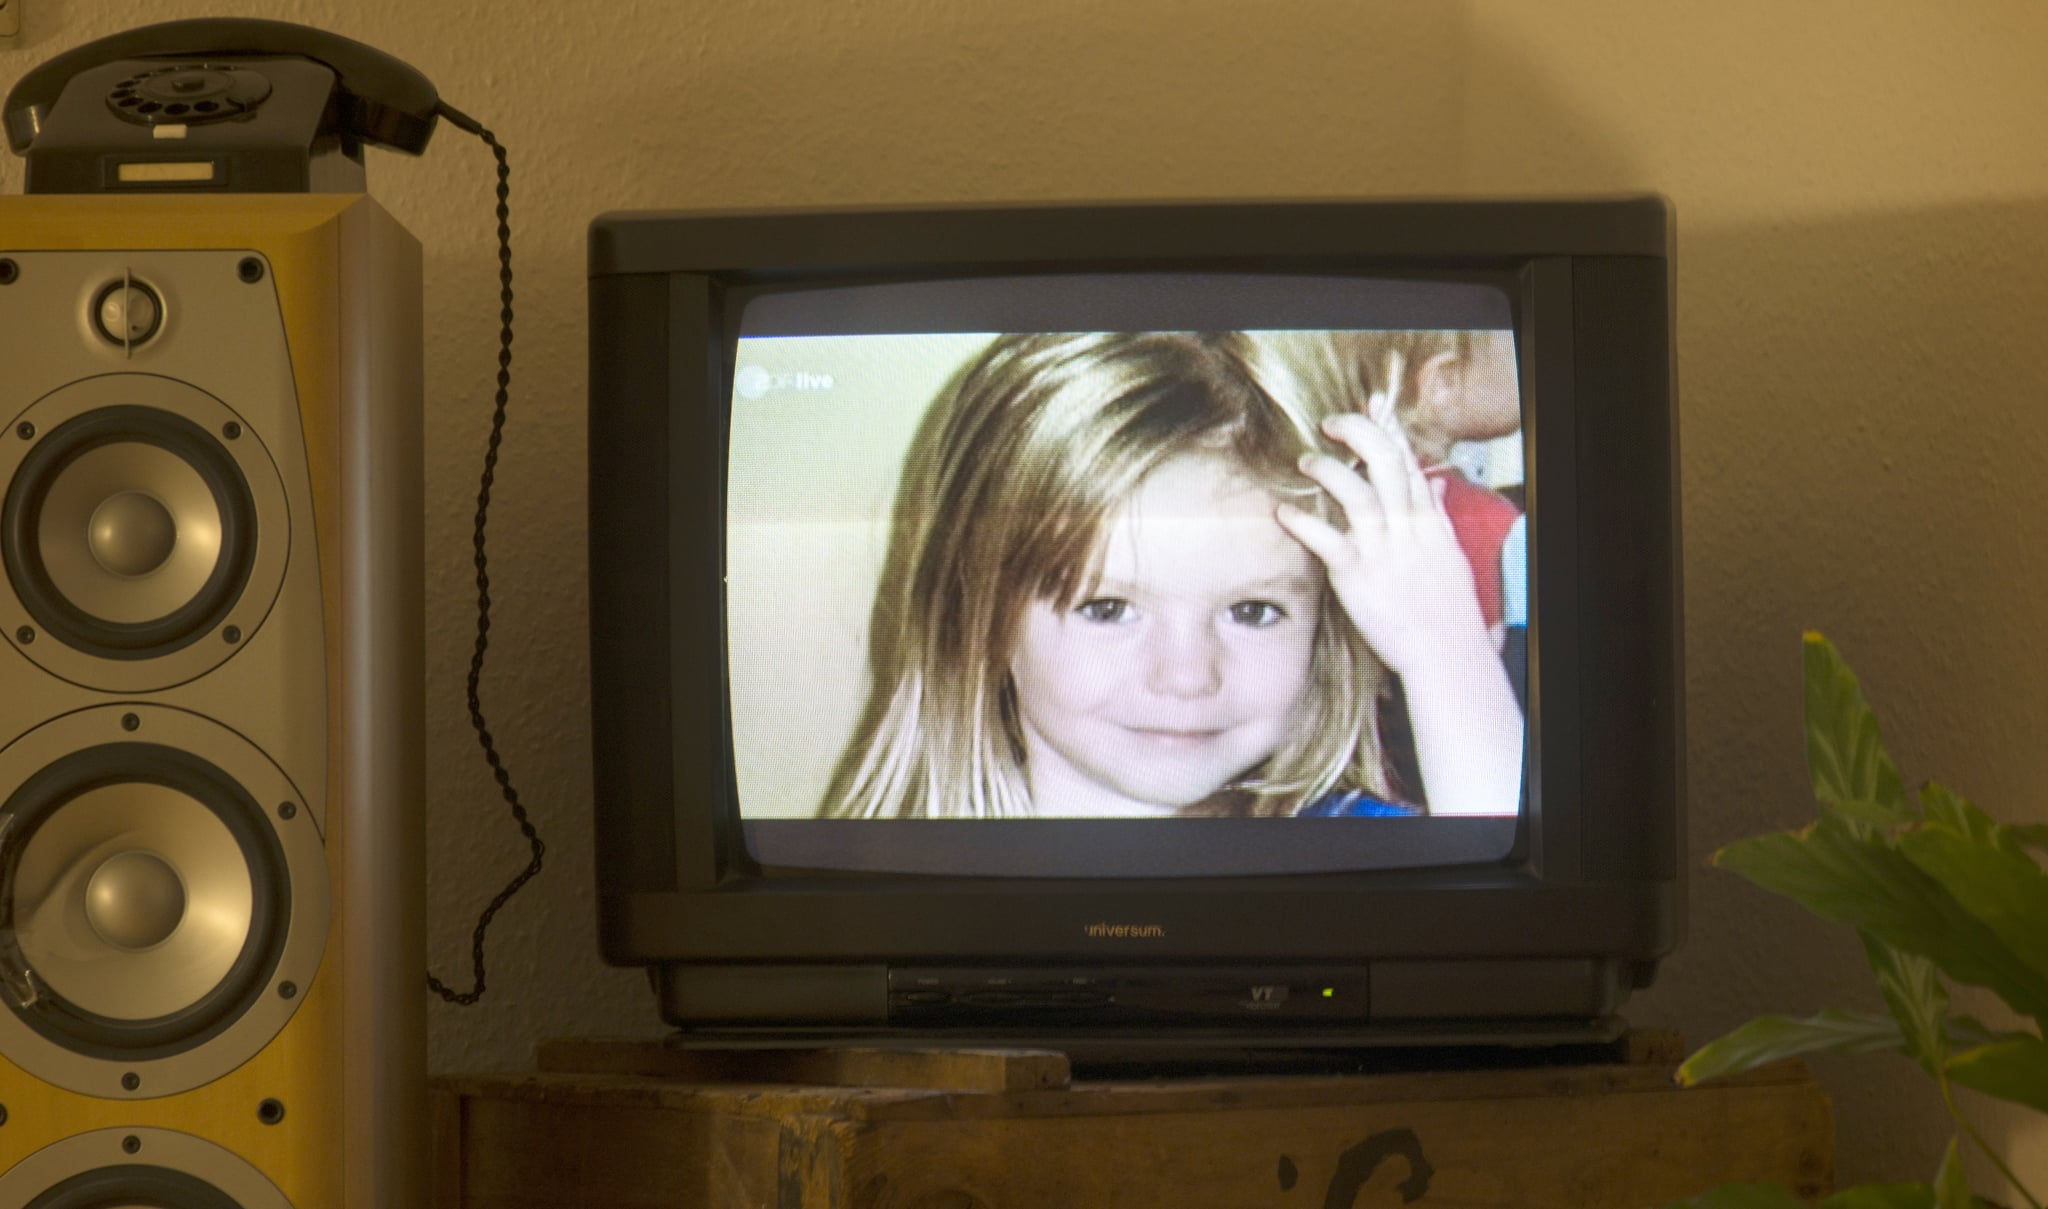 A photo of British girl Madeleine McCann aka Maddie is displayed on a TV screen at an appartmen in Berlin, on October 16, 2013 during the broadcast of German ZDF's